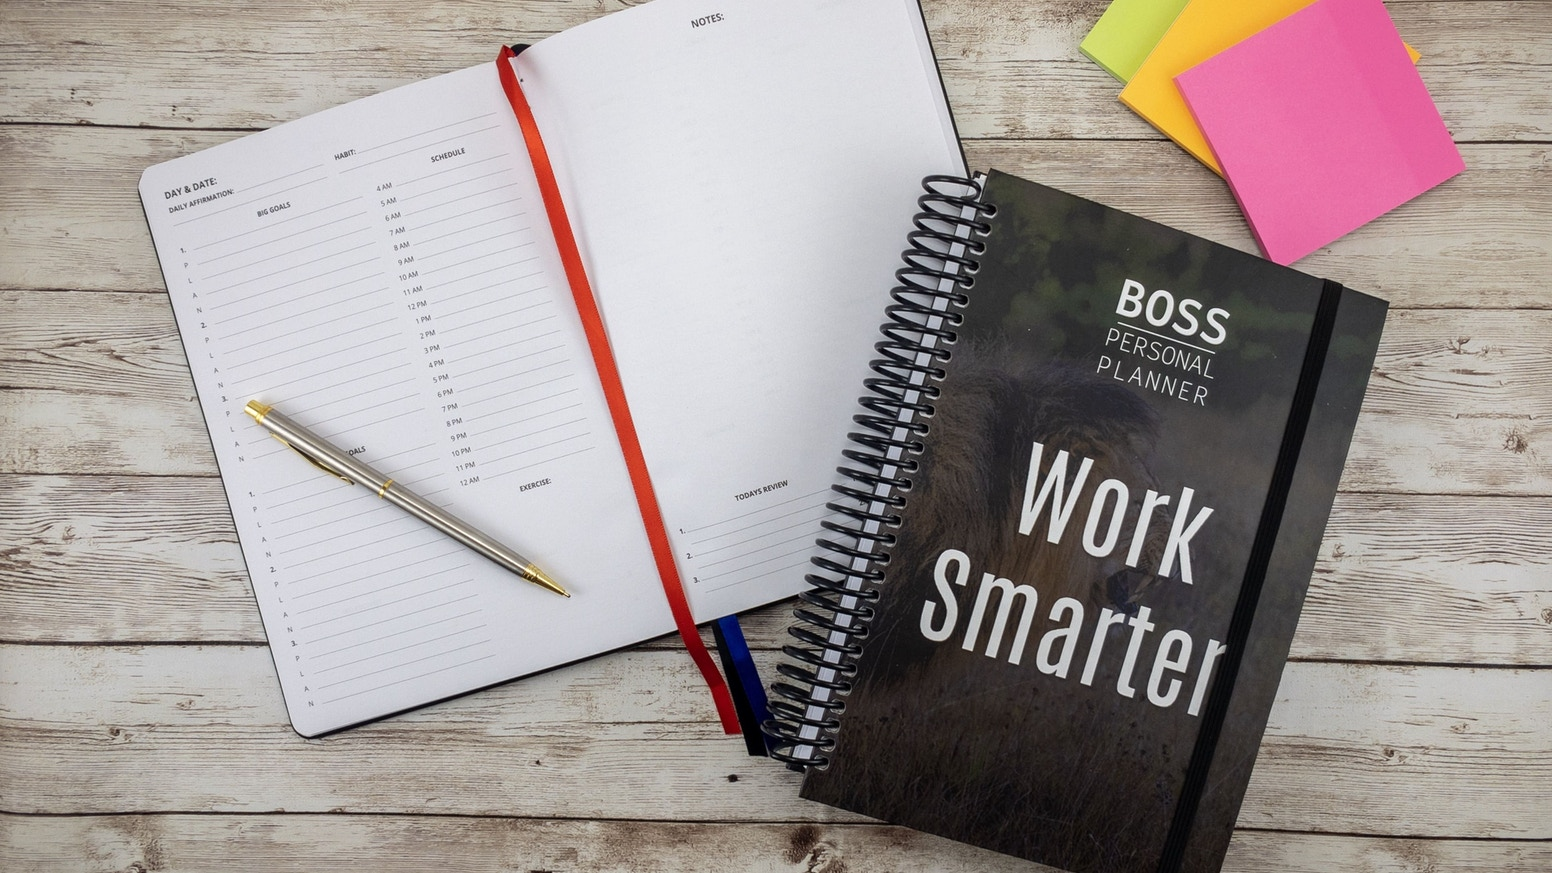 Productivity notebook built to help you stay goal oriented & motivated by working smarter. The easiest planning system ever.